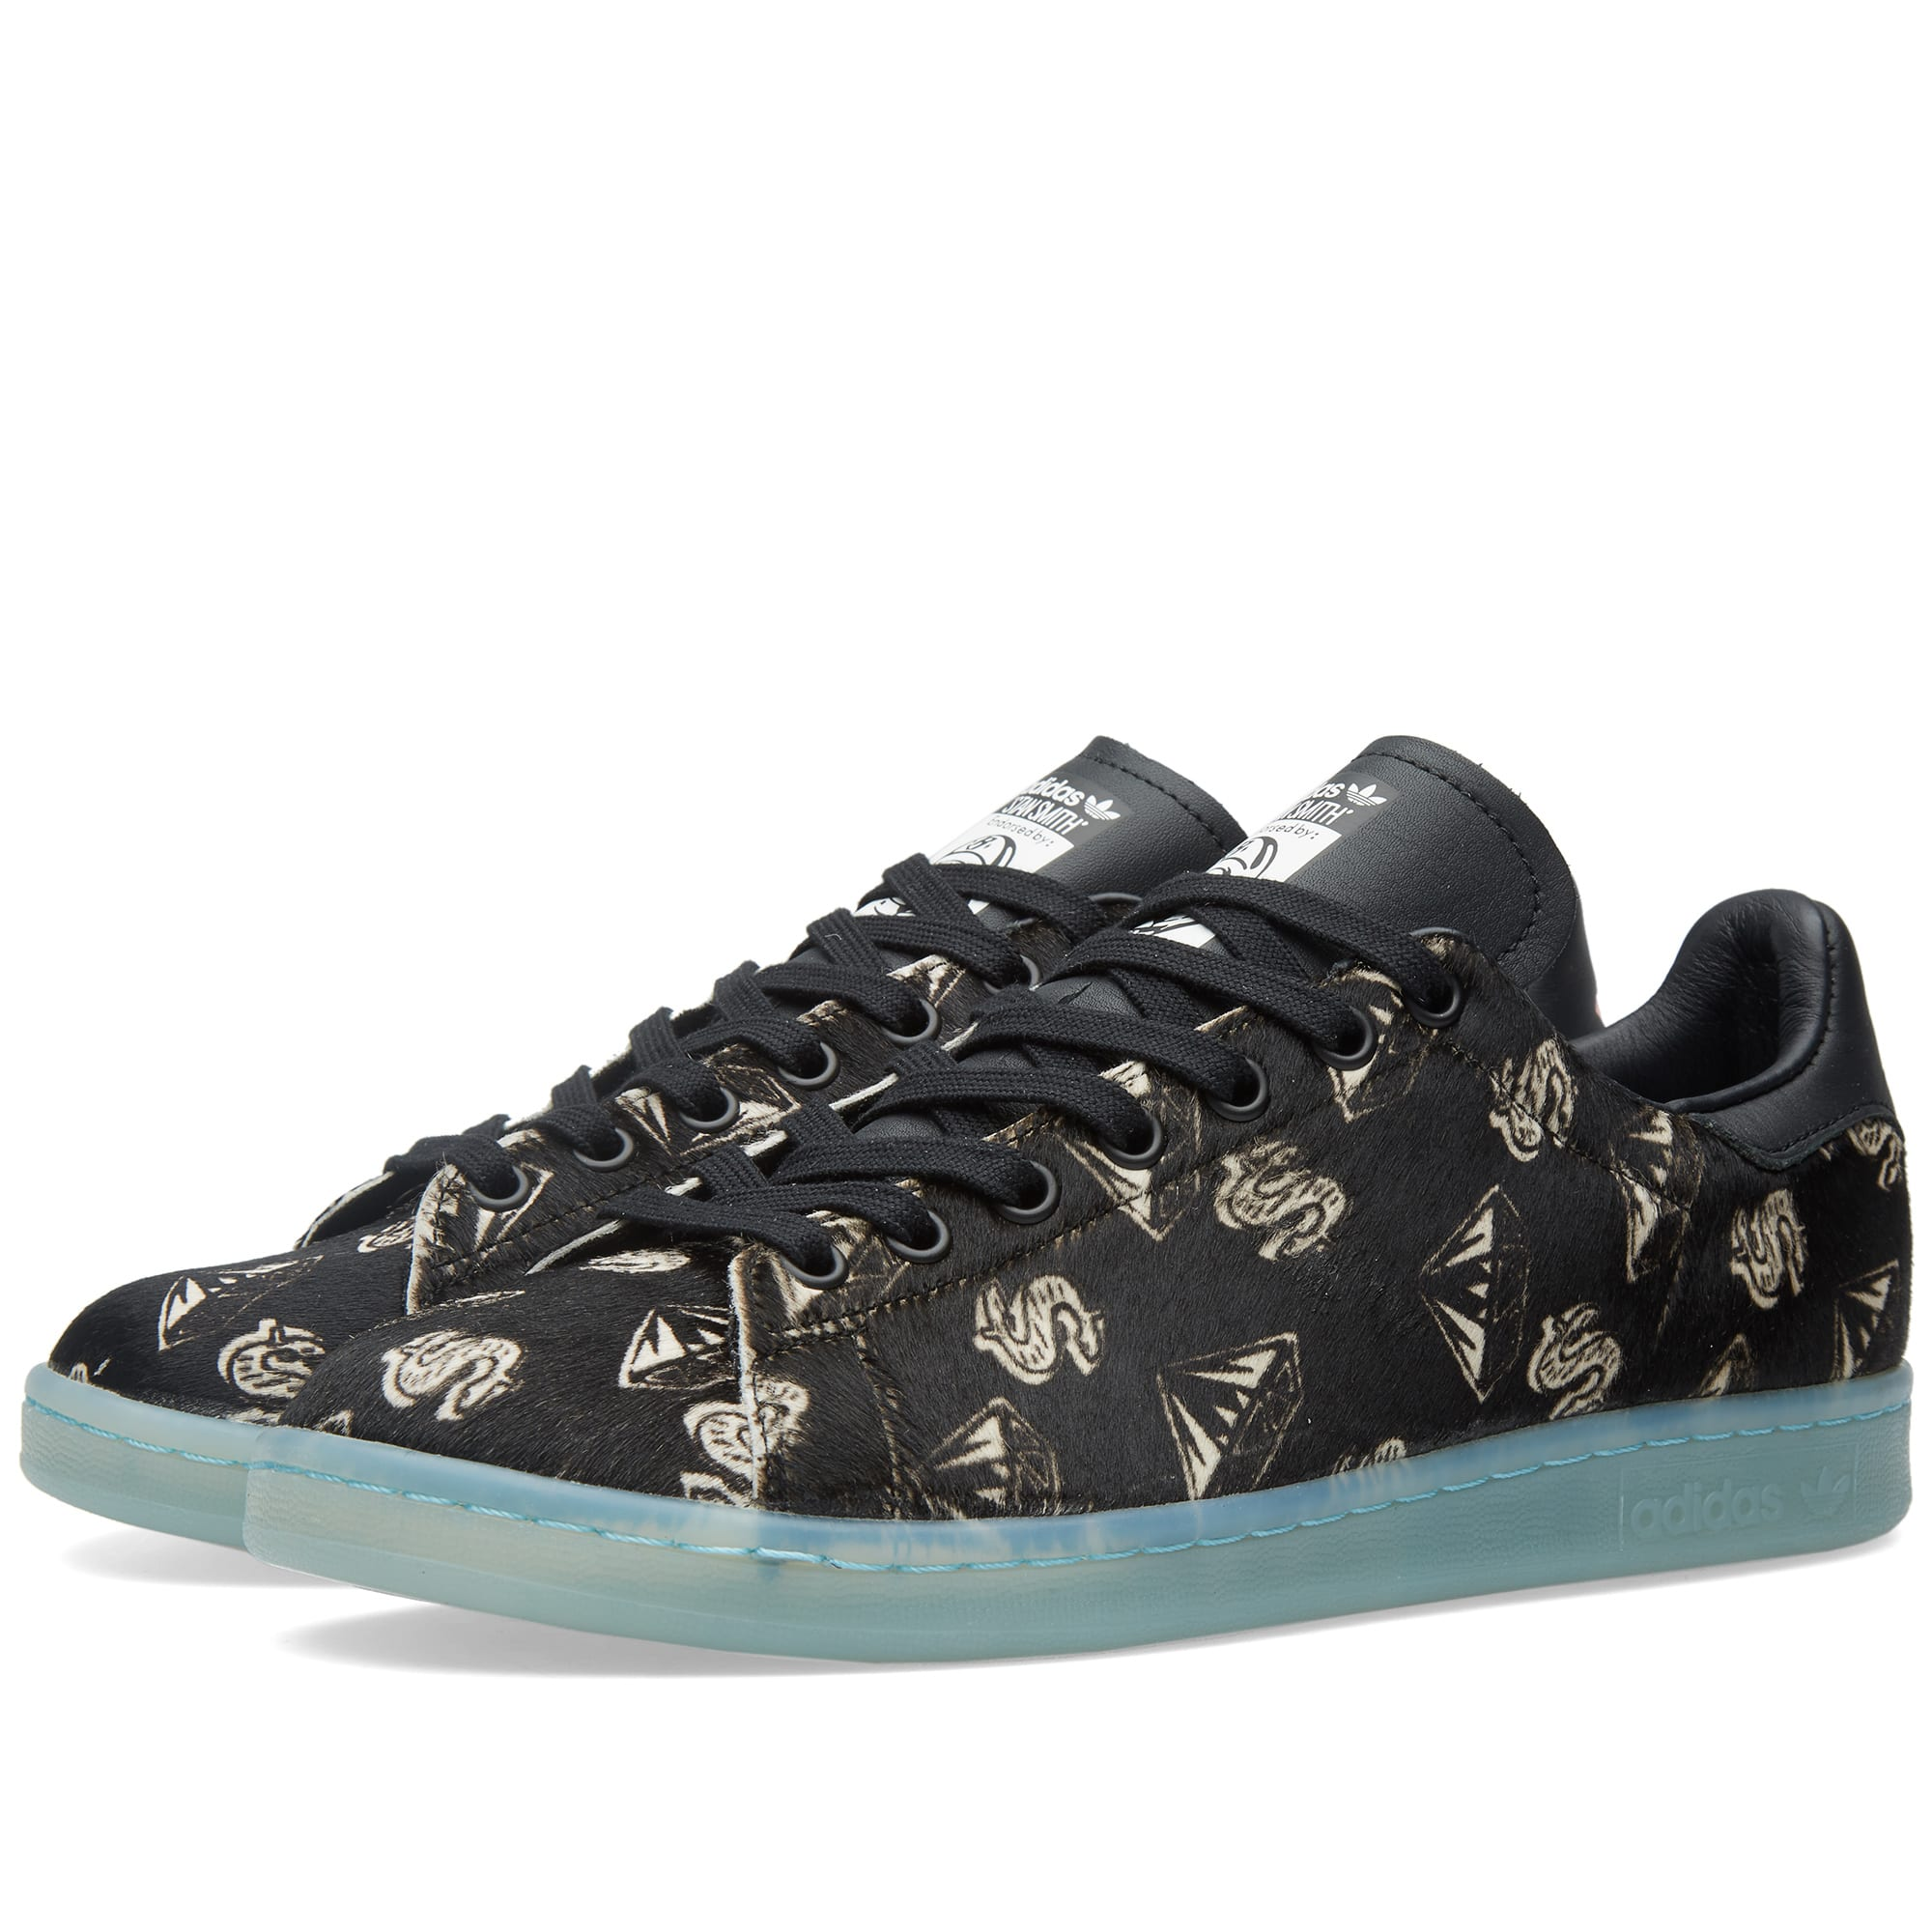 d01989ac015f3 Adidas Consortium x Pharrell x BBC Stan Smith  Pony Hair  Core Black ...